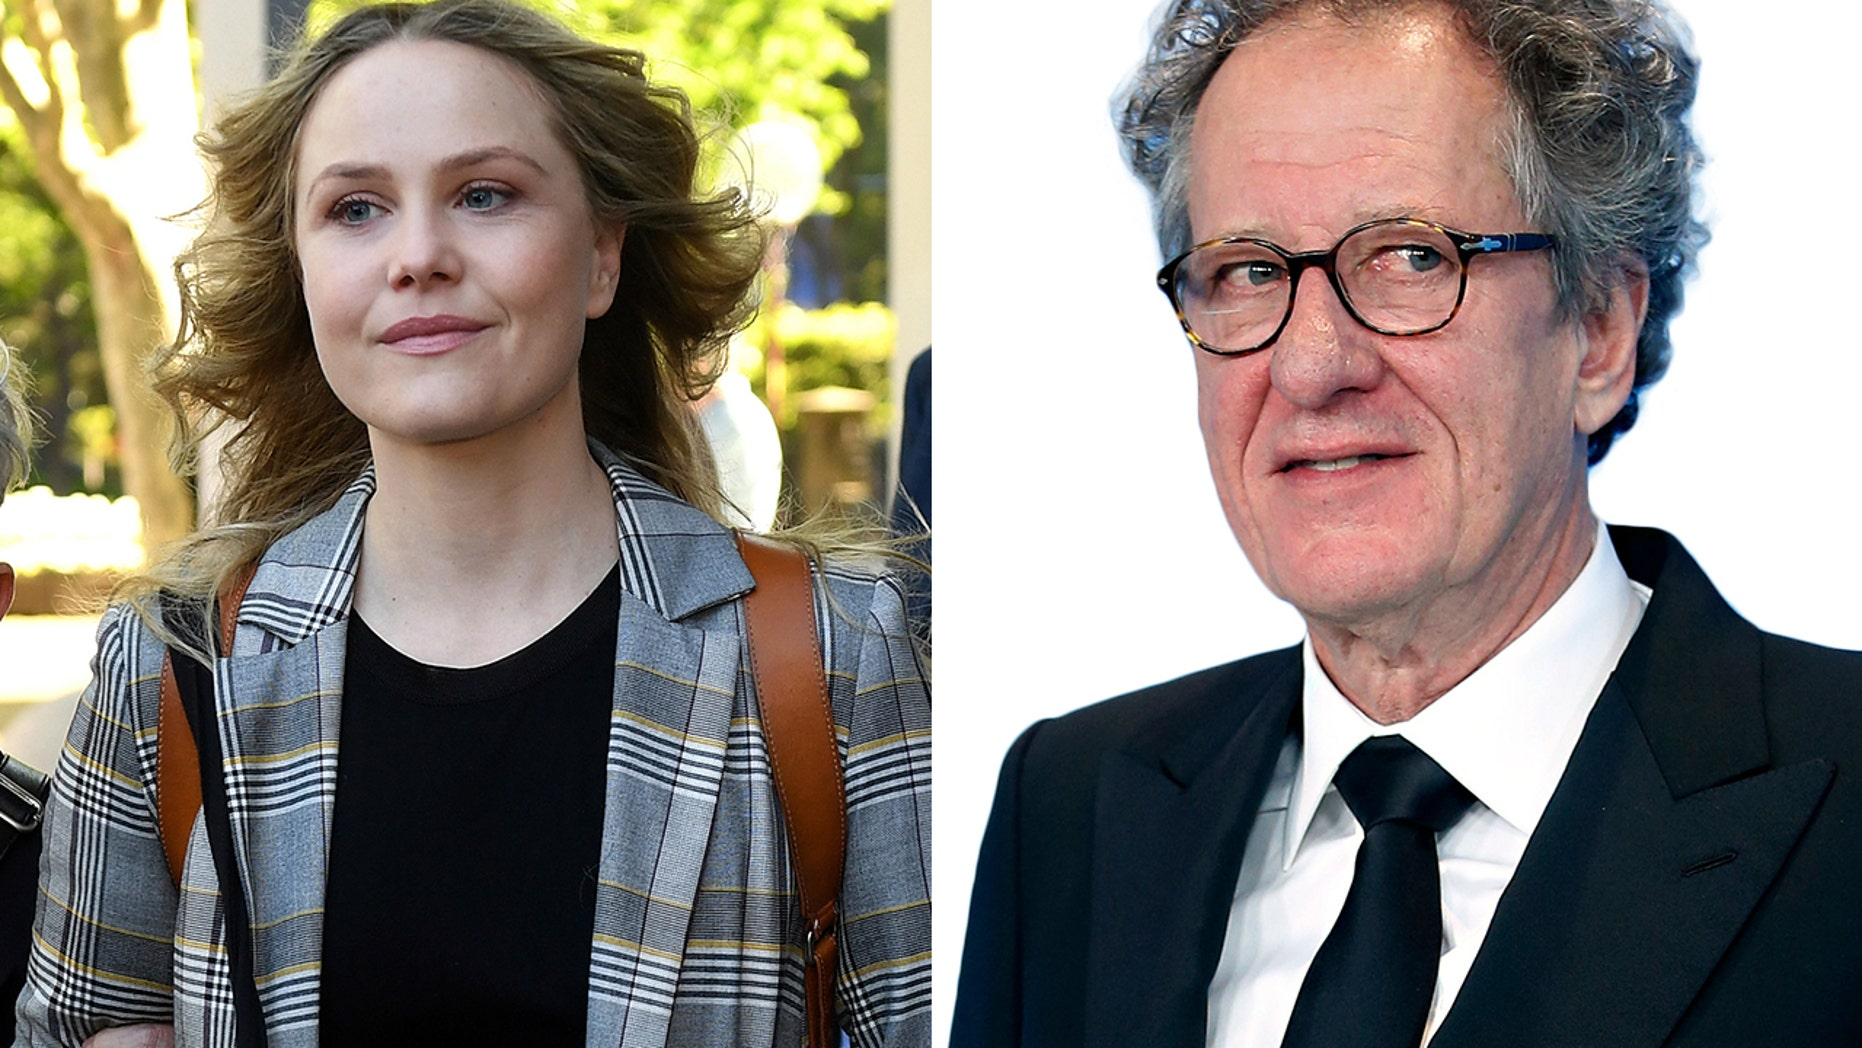 Actress Eryn Jean Norvill, left, leaves the Federal Court in Sydney, Australia, Tuesday, Oct. 30, 2018, after giving evidence during a defamation trial brought on by fellow actor Geoffrey Rush, right.